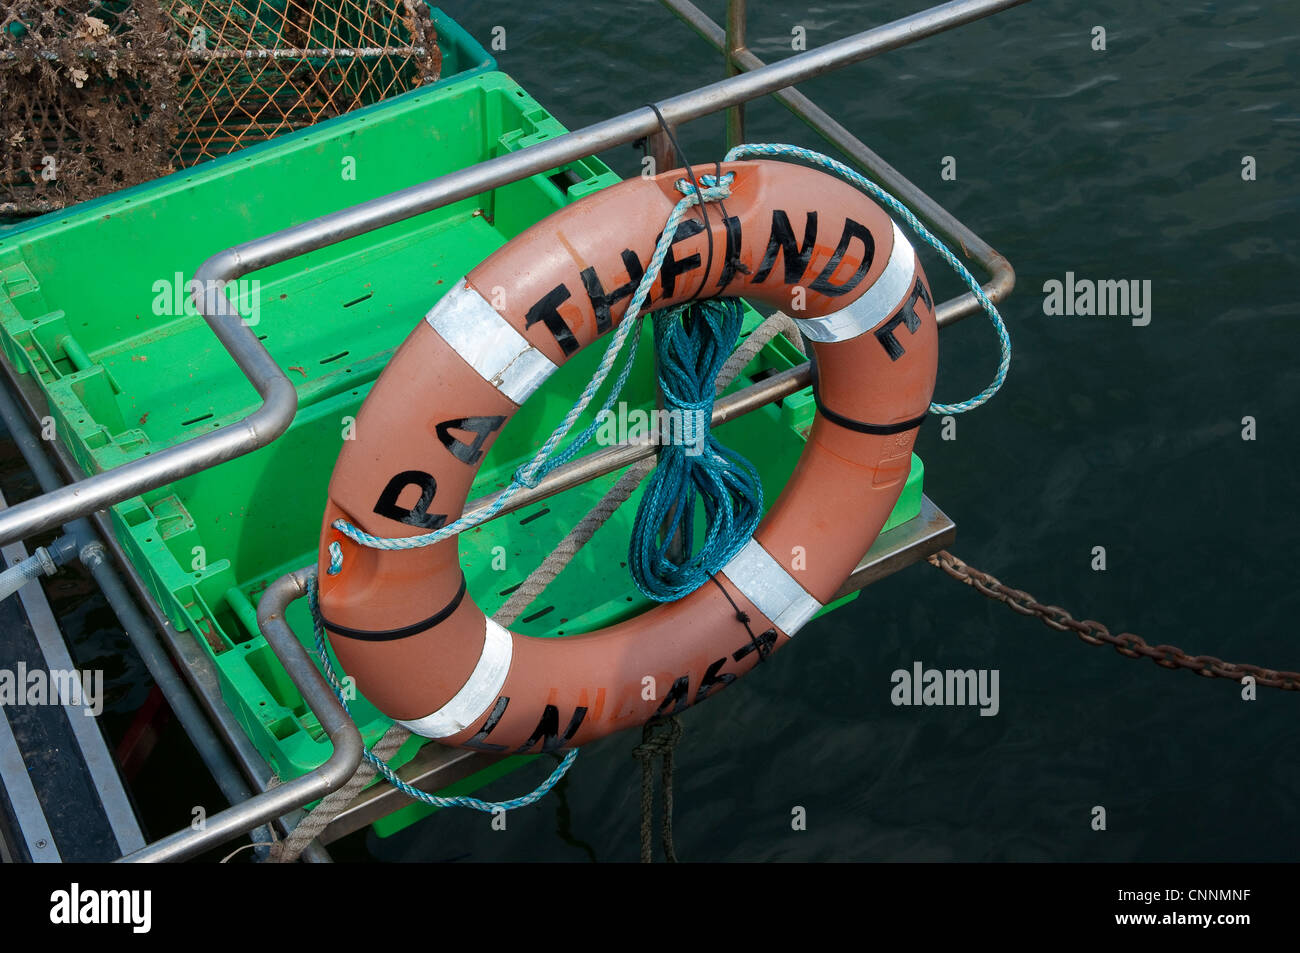 Lifebelt on a boat moored in the harbour at Wells Next The Sea, Norfolk, East Anglia, England. - Stock Image